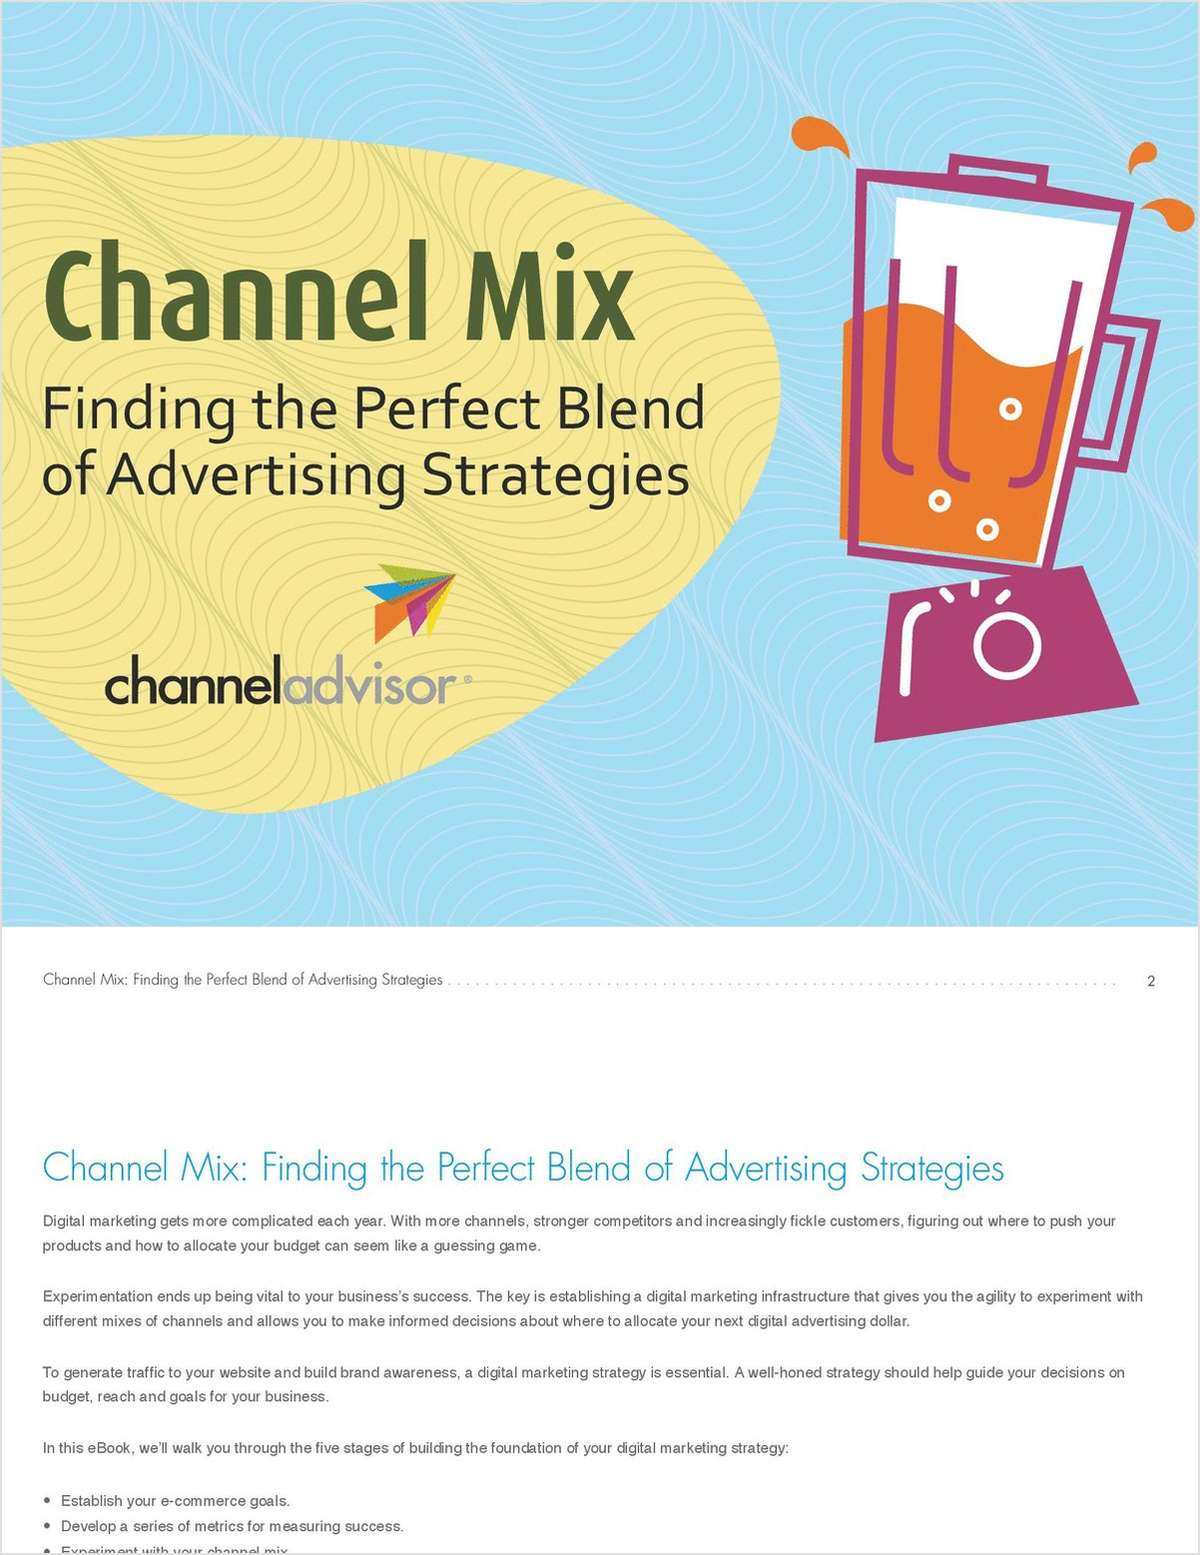 Channel Mix: Finding the Perfect Blend of Advertising Strategies